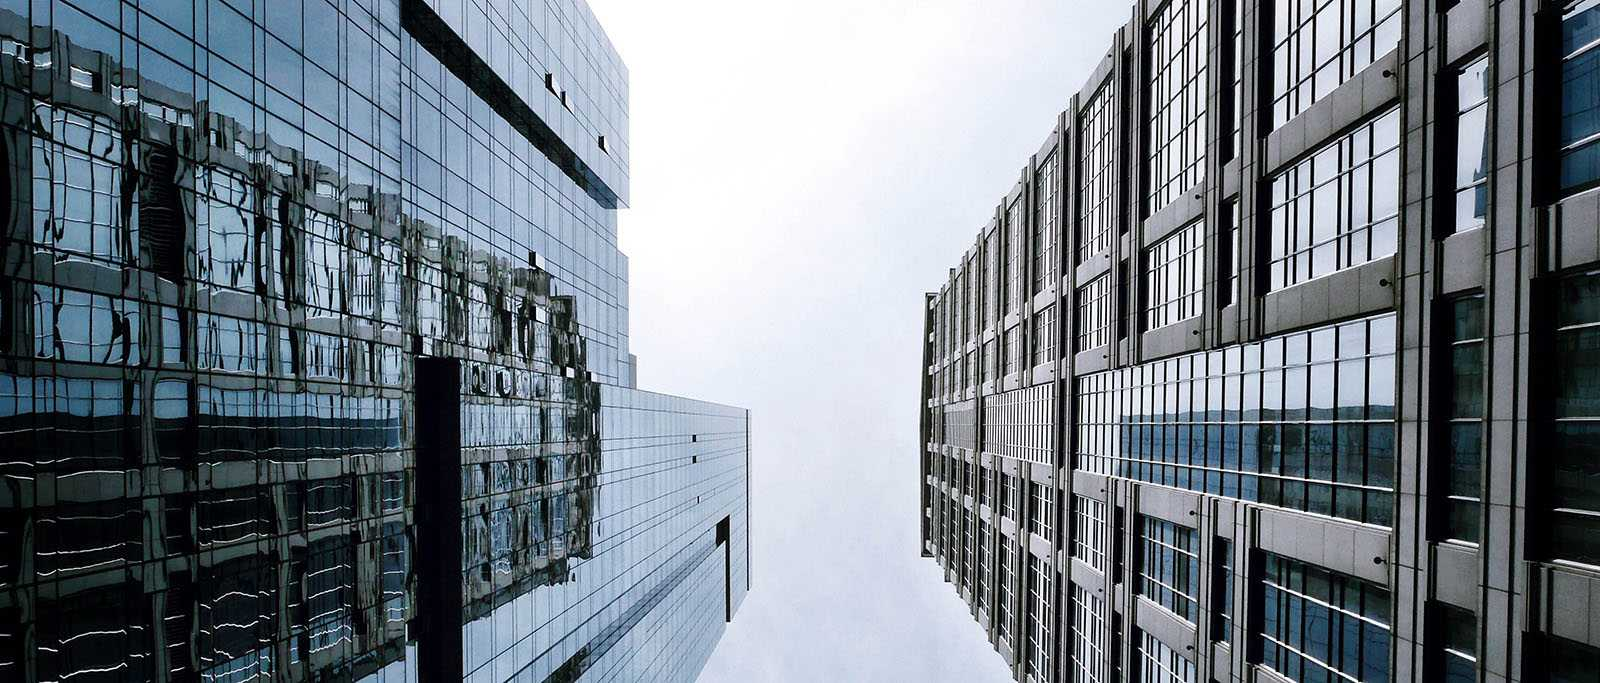 A view looking up at two large skycrapers with cloudy patch of sky between them